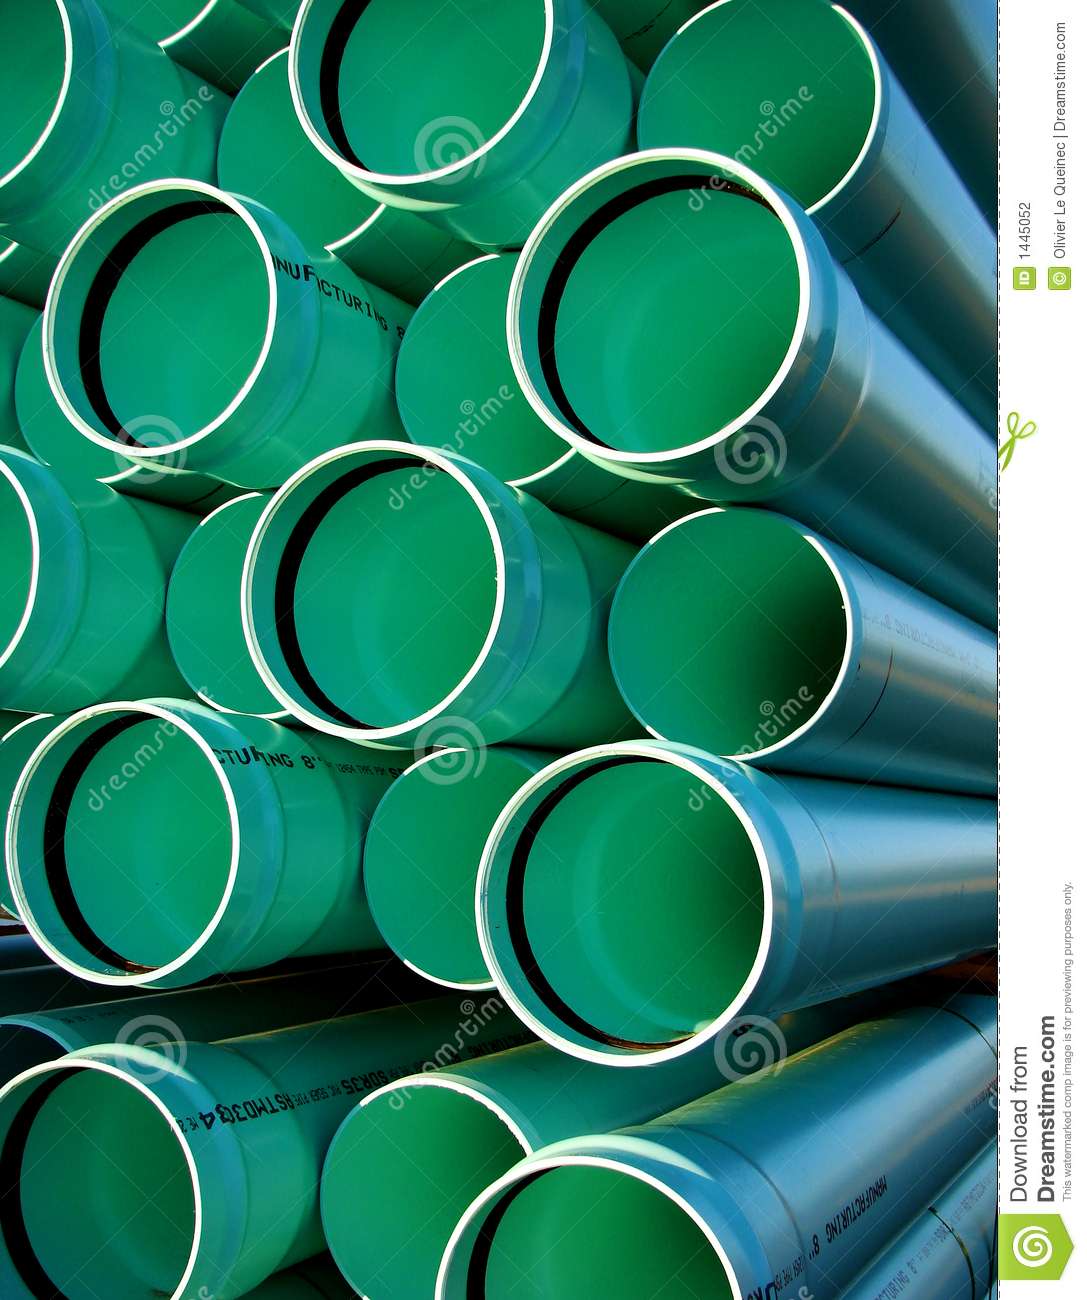 Sewer Drain Pvc Pipes On Housing Construction Site Stock